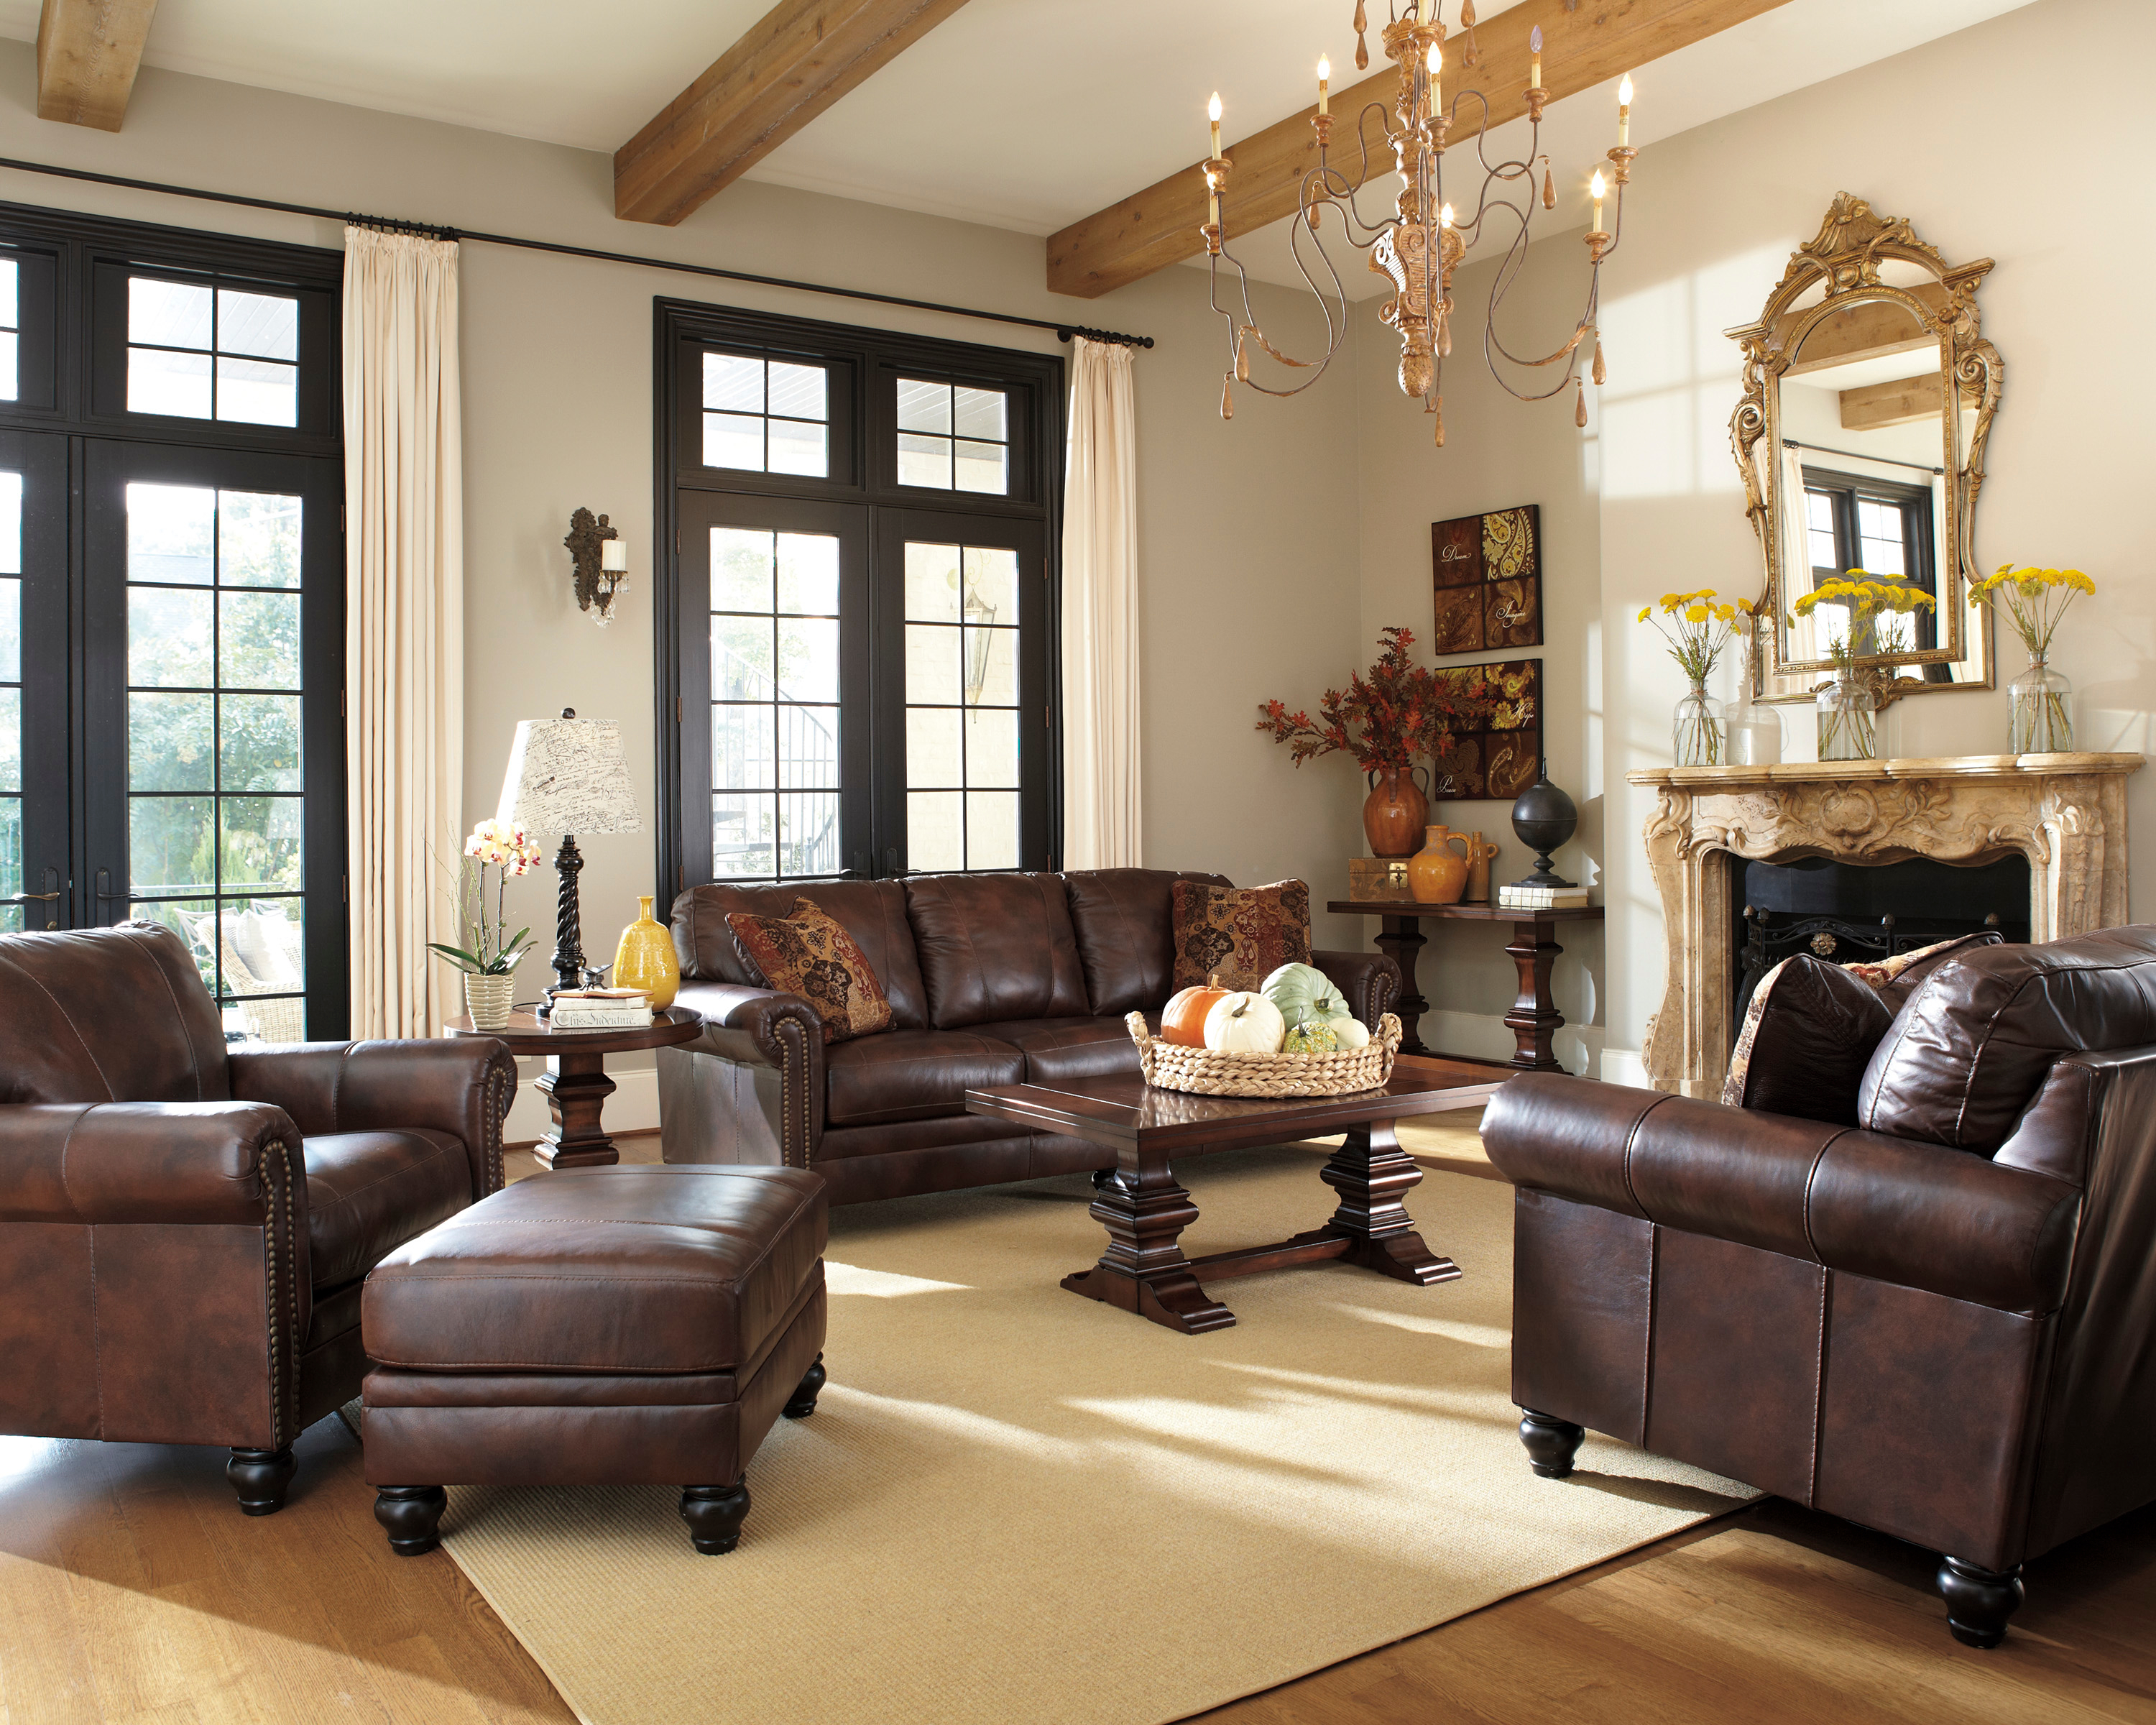 Lovely Ashley Furniture HomeStore Outlet In Oakland, CA | Whitepages